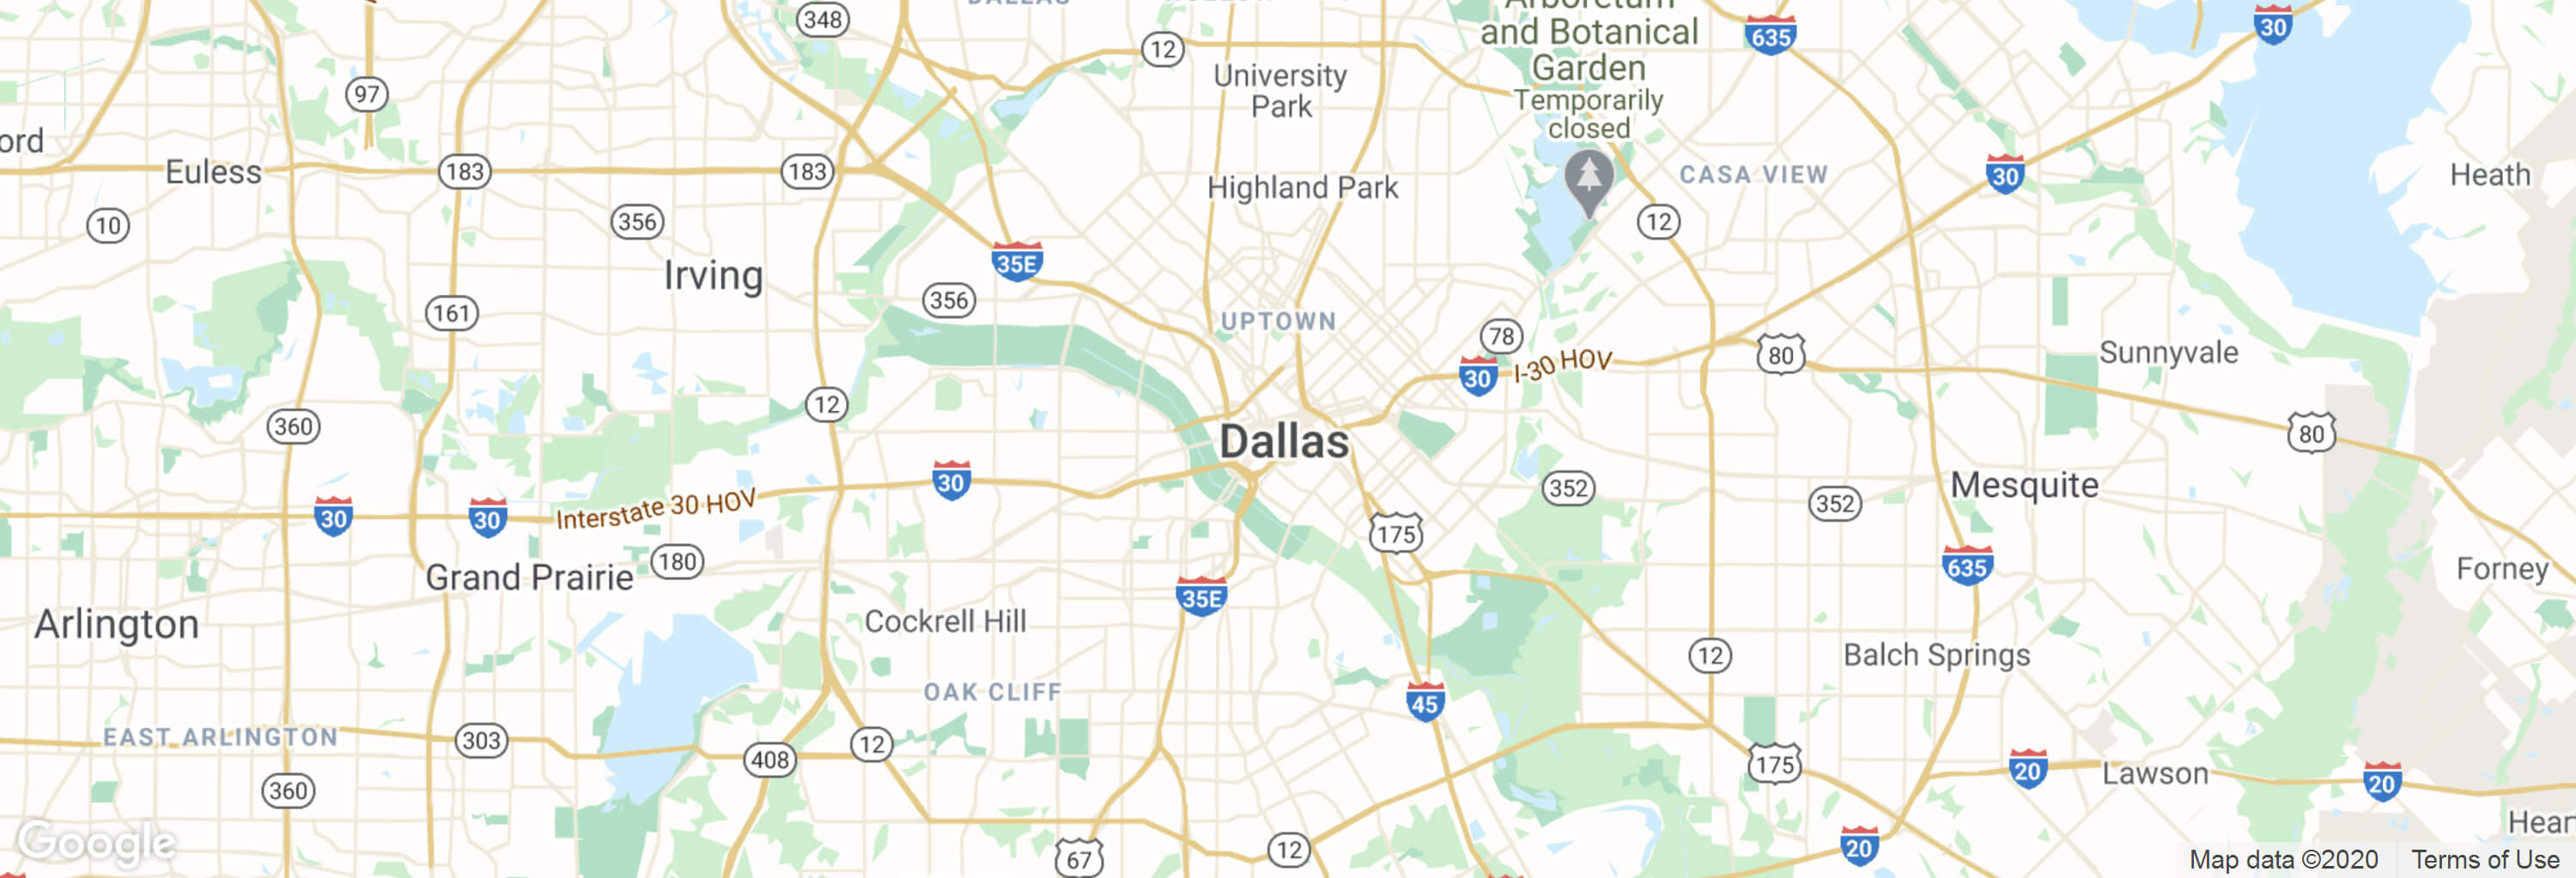 Dallas city map